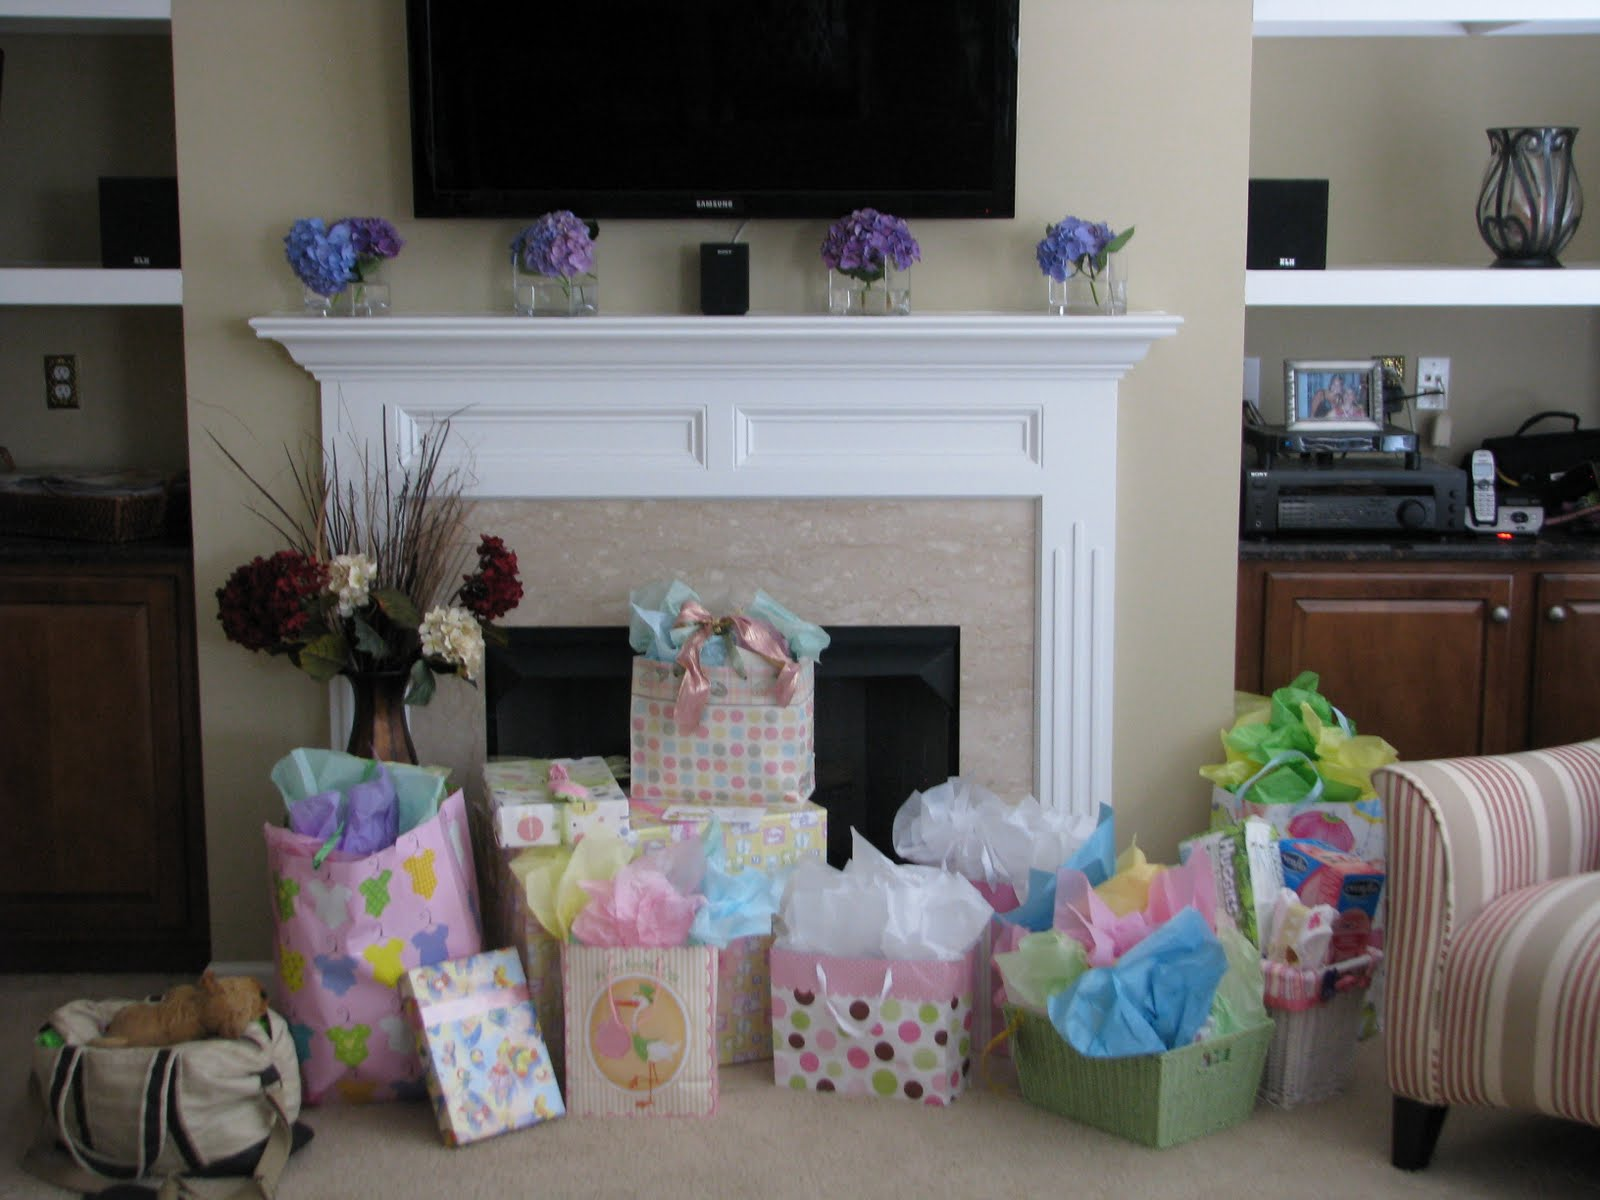 Budget Friendly Baby Shower. Flower Arrangements On The Fireplace From Our  Yard, Vases Are From Daughter #3 Wedding Centerpieces A Few Years Back. We  Have ...